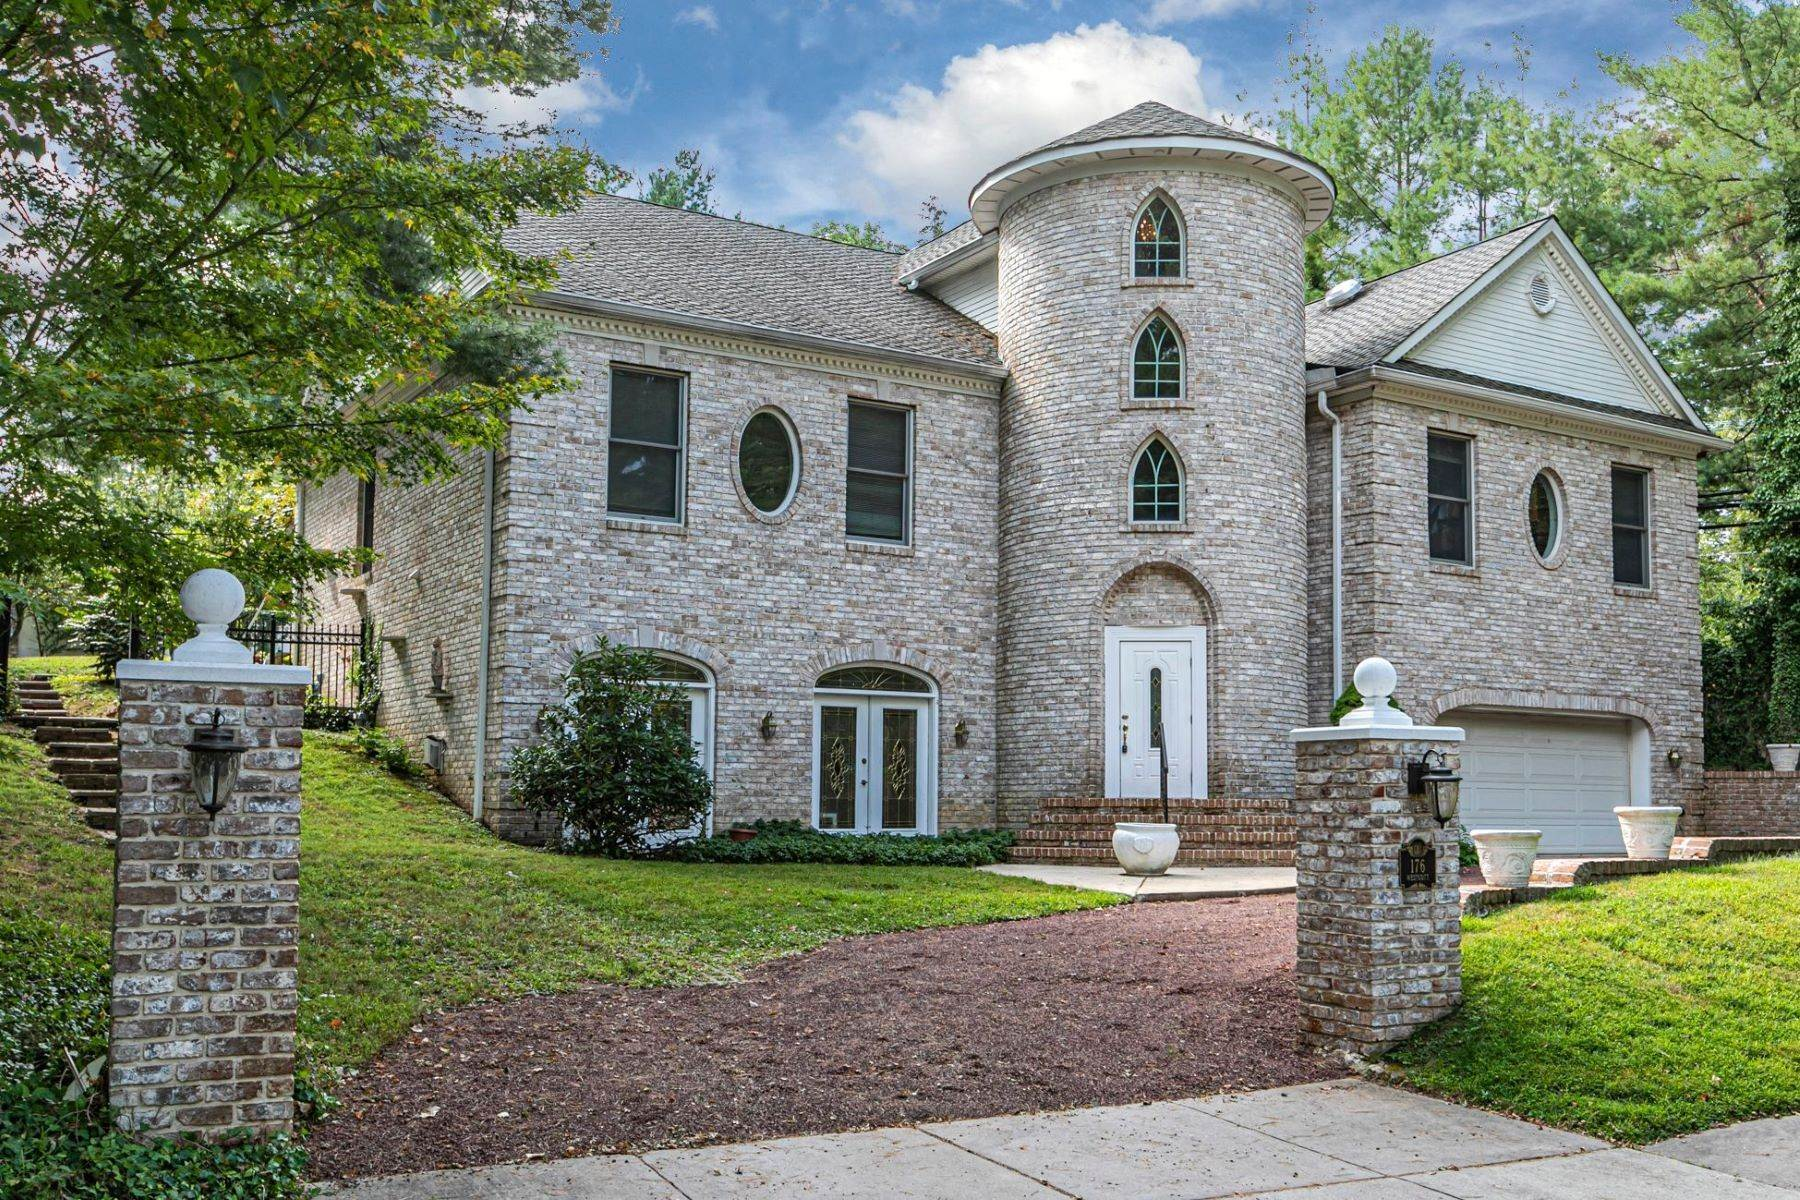 Single Family Homes for Sale at Large, Lofty & Like No Other 176 Westcott Road, Princeton, New Jersey 08540 United States